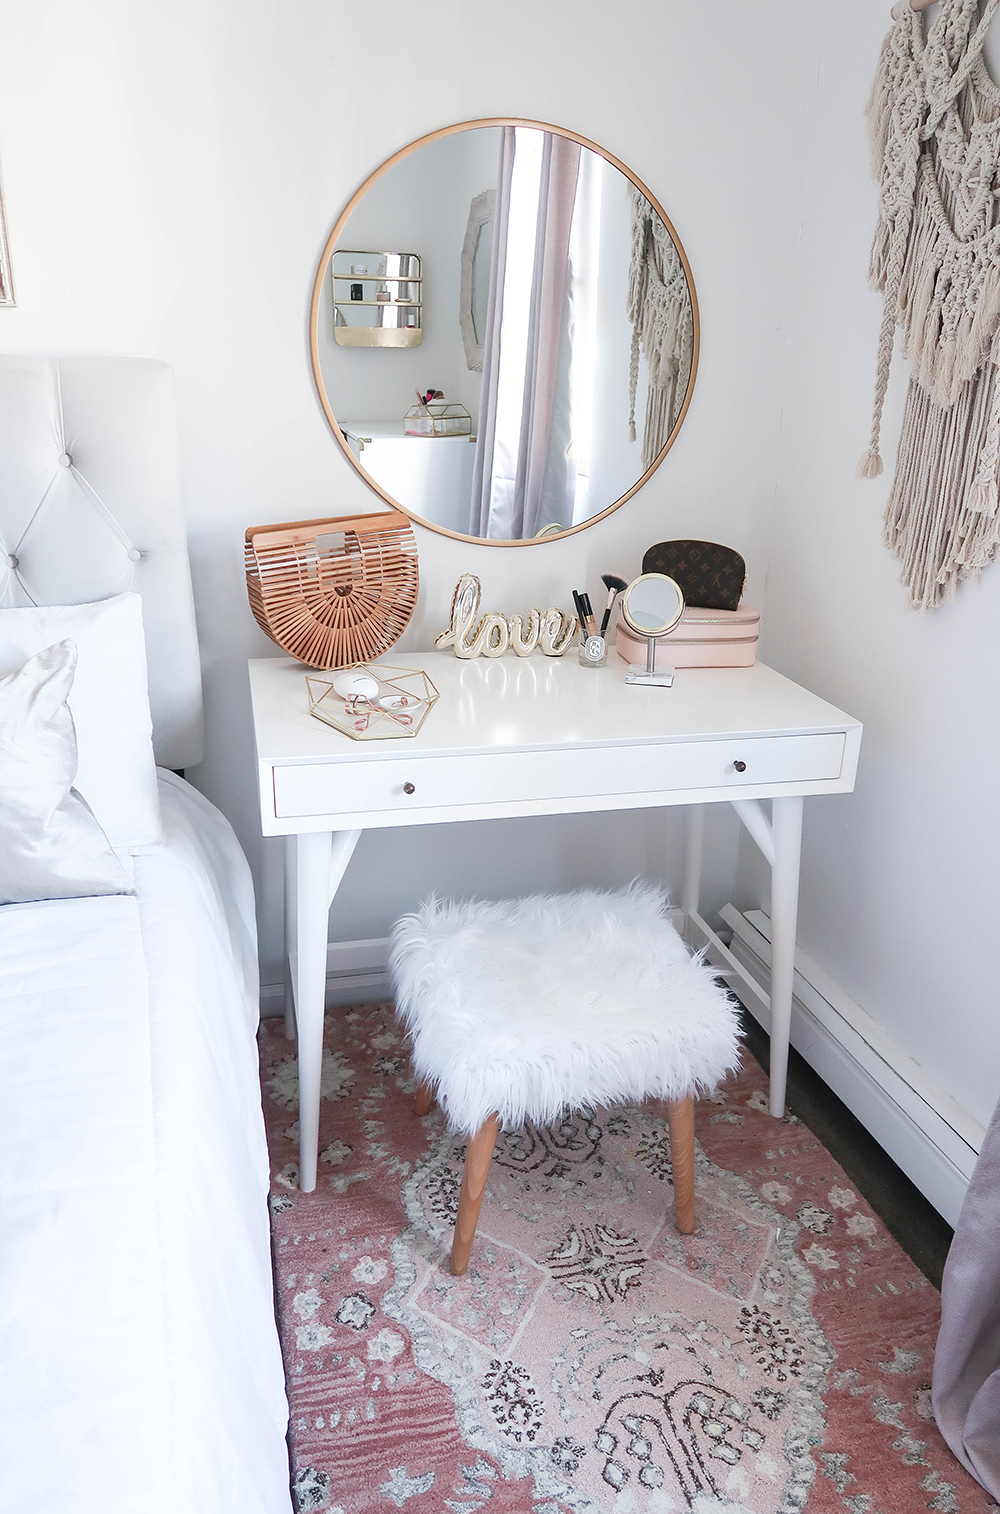 Best Styling A Vanity In A Small Space Bedroom Decor Room 400 x 300